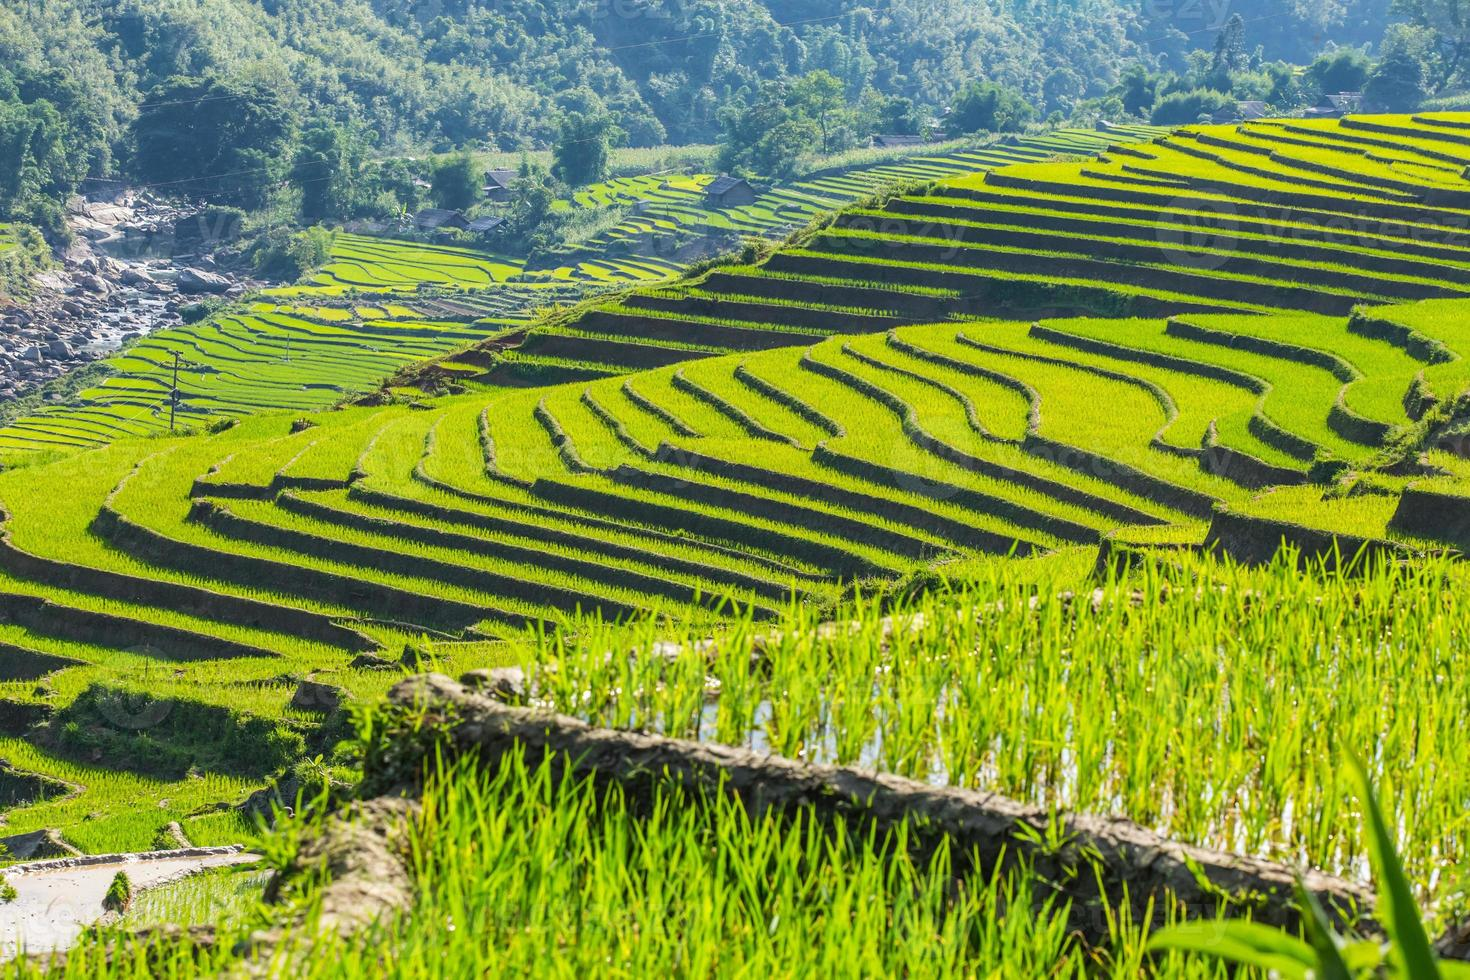 Valley among the rice terraces. photo